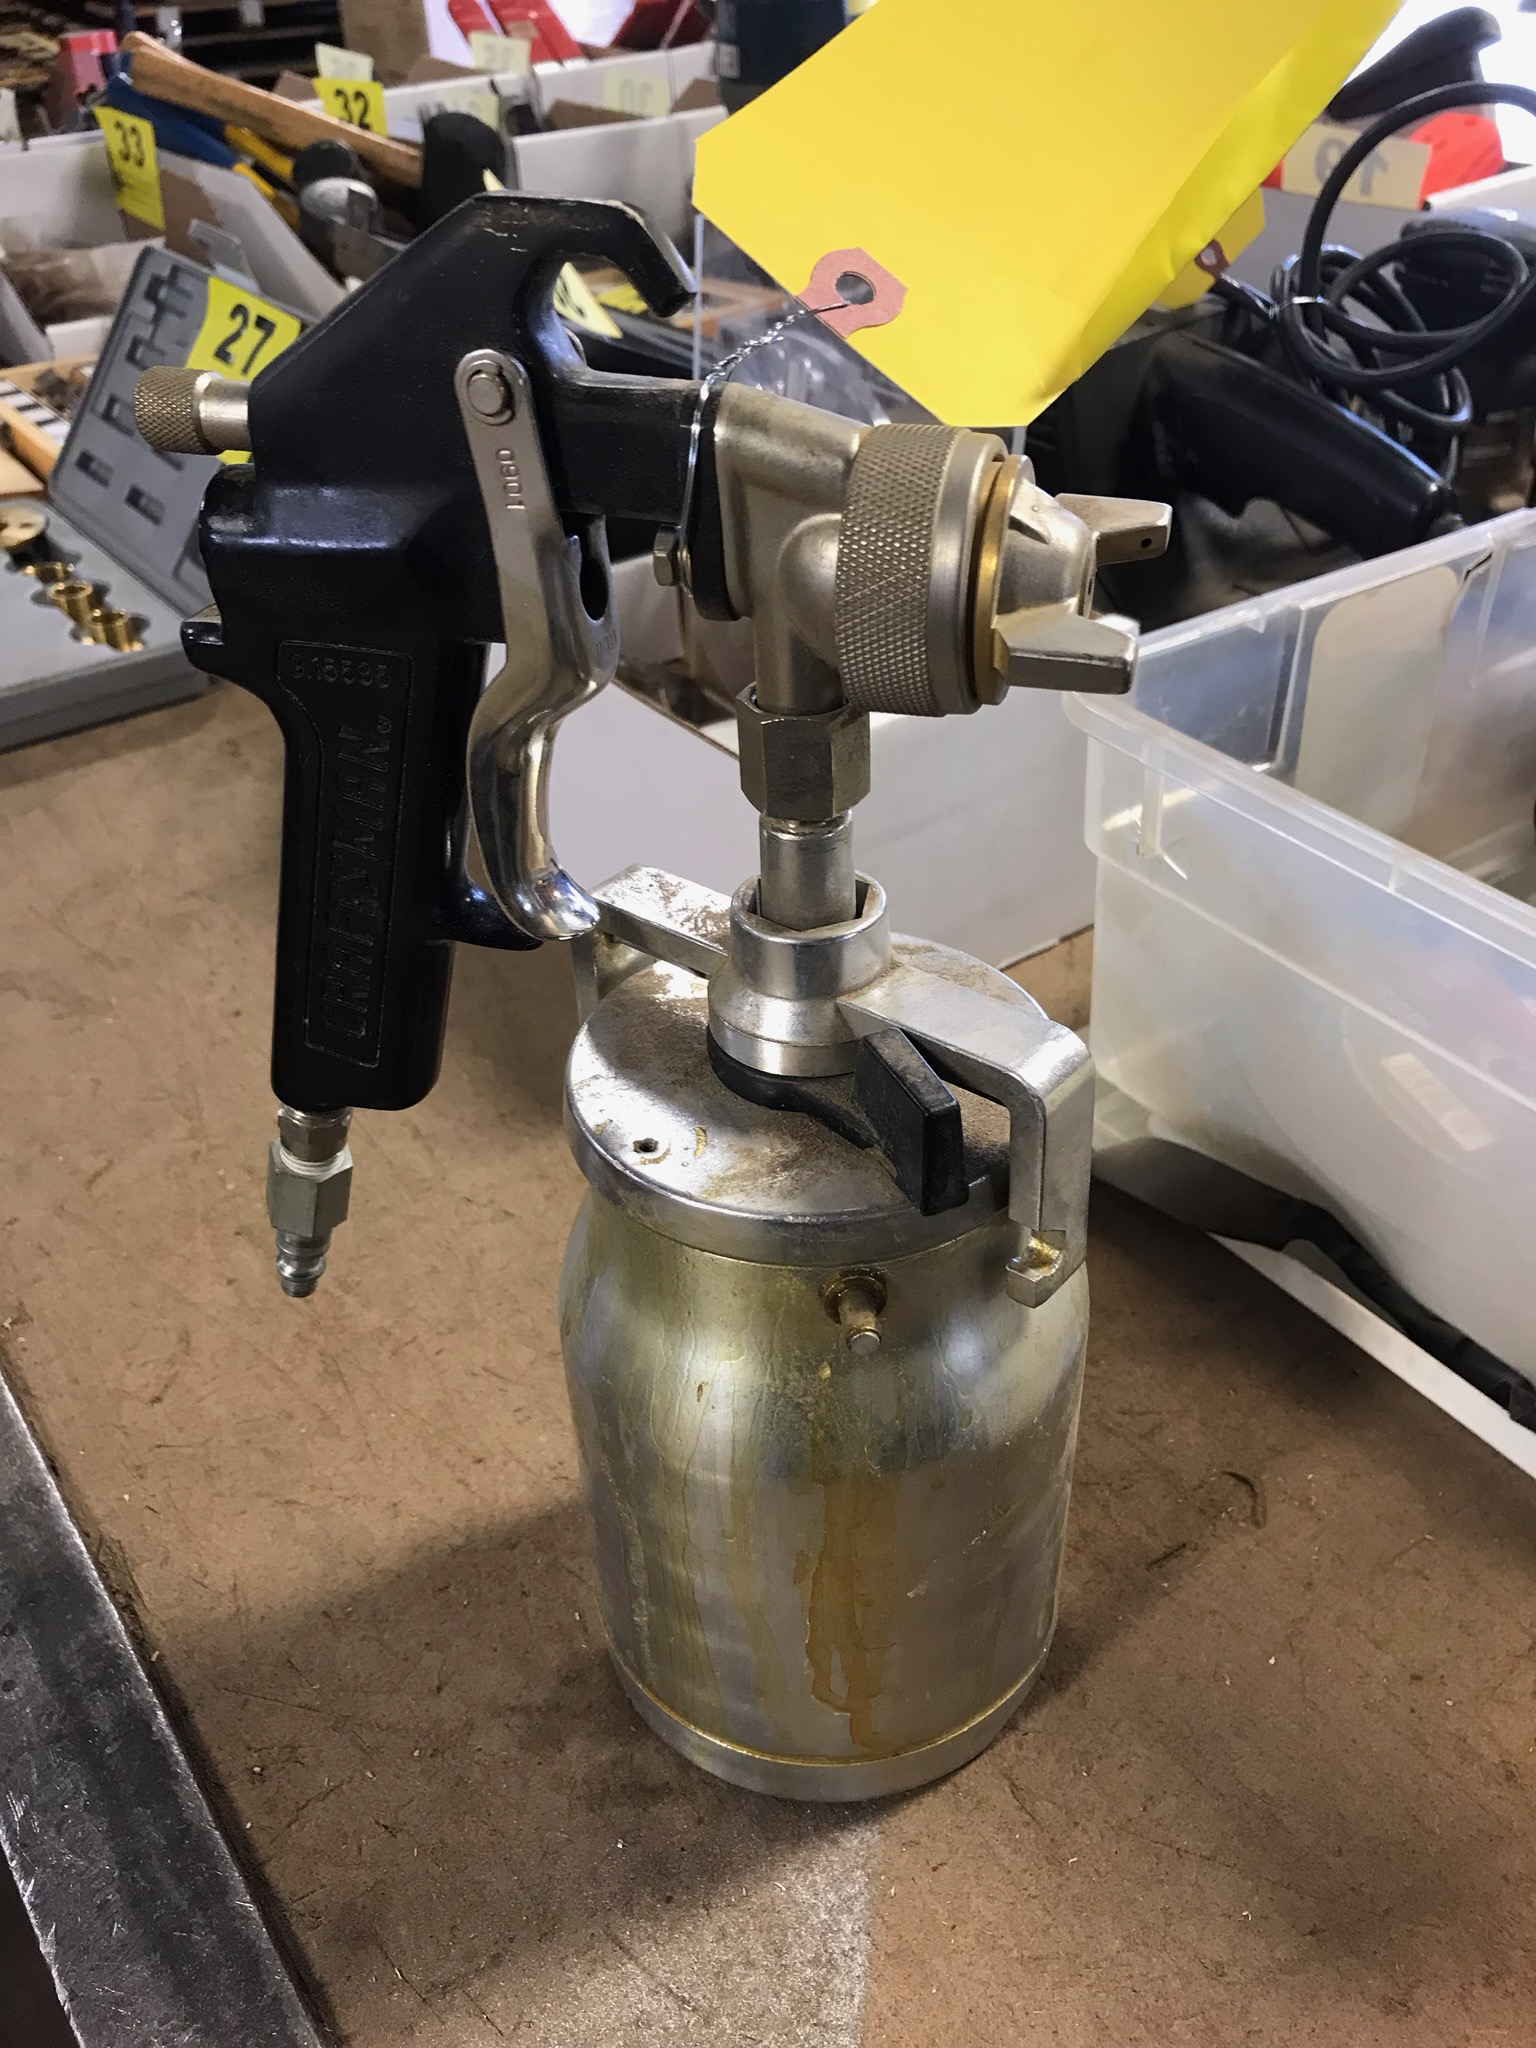 Lot 18 - CRAFTSMAN PNEUMATIC SPRAY GUN